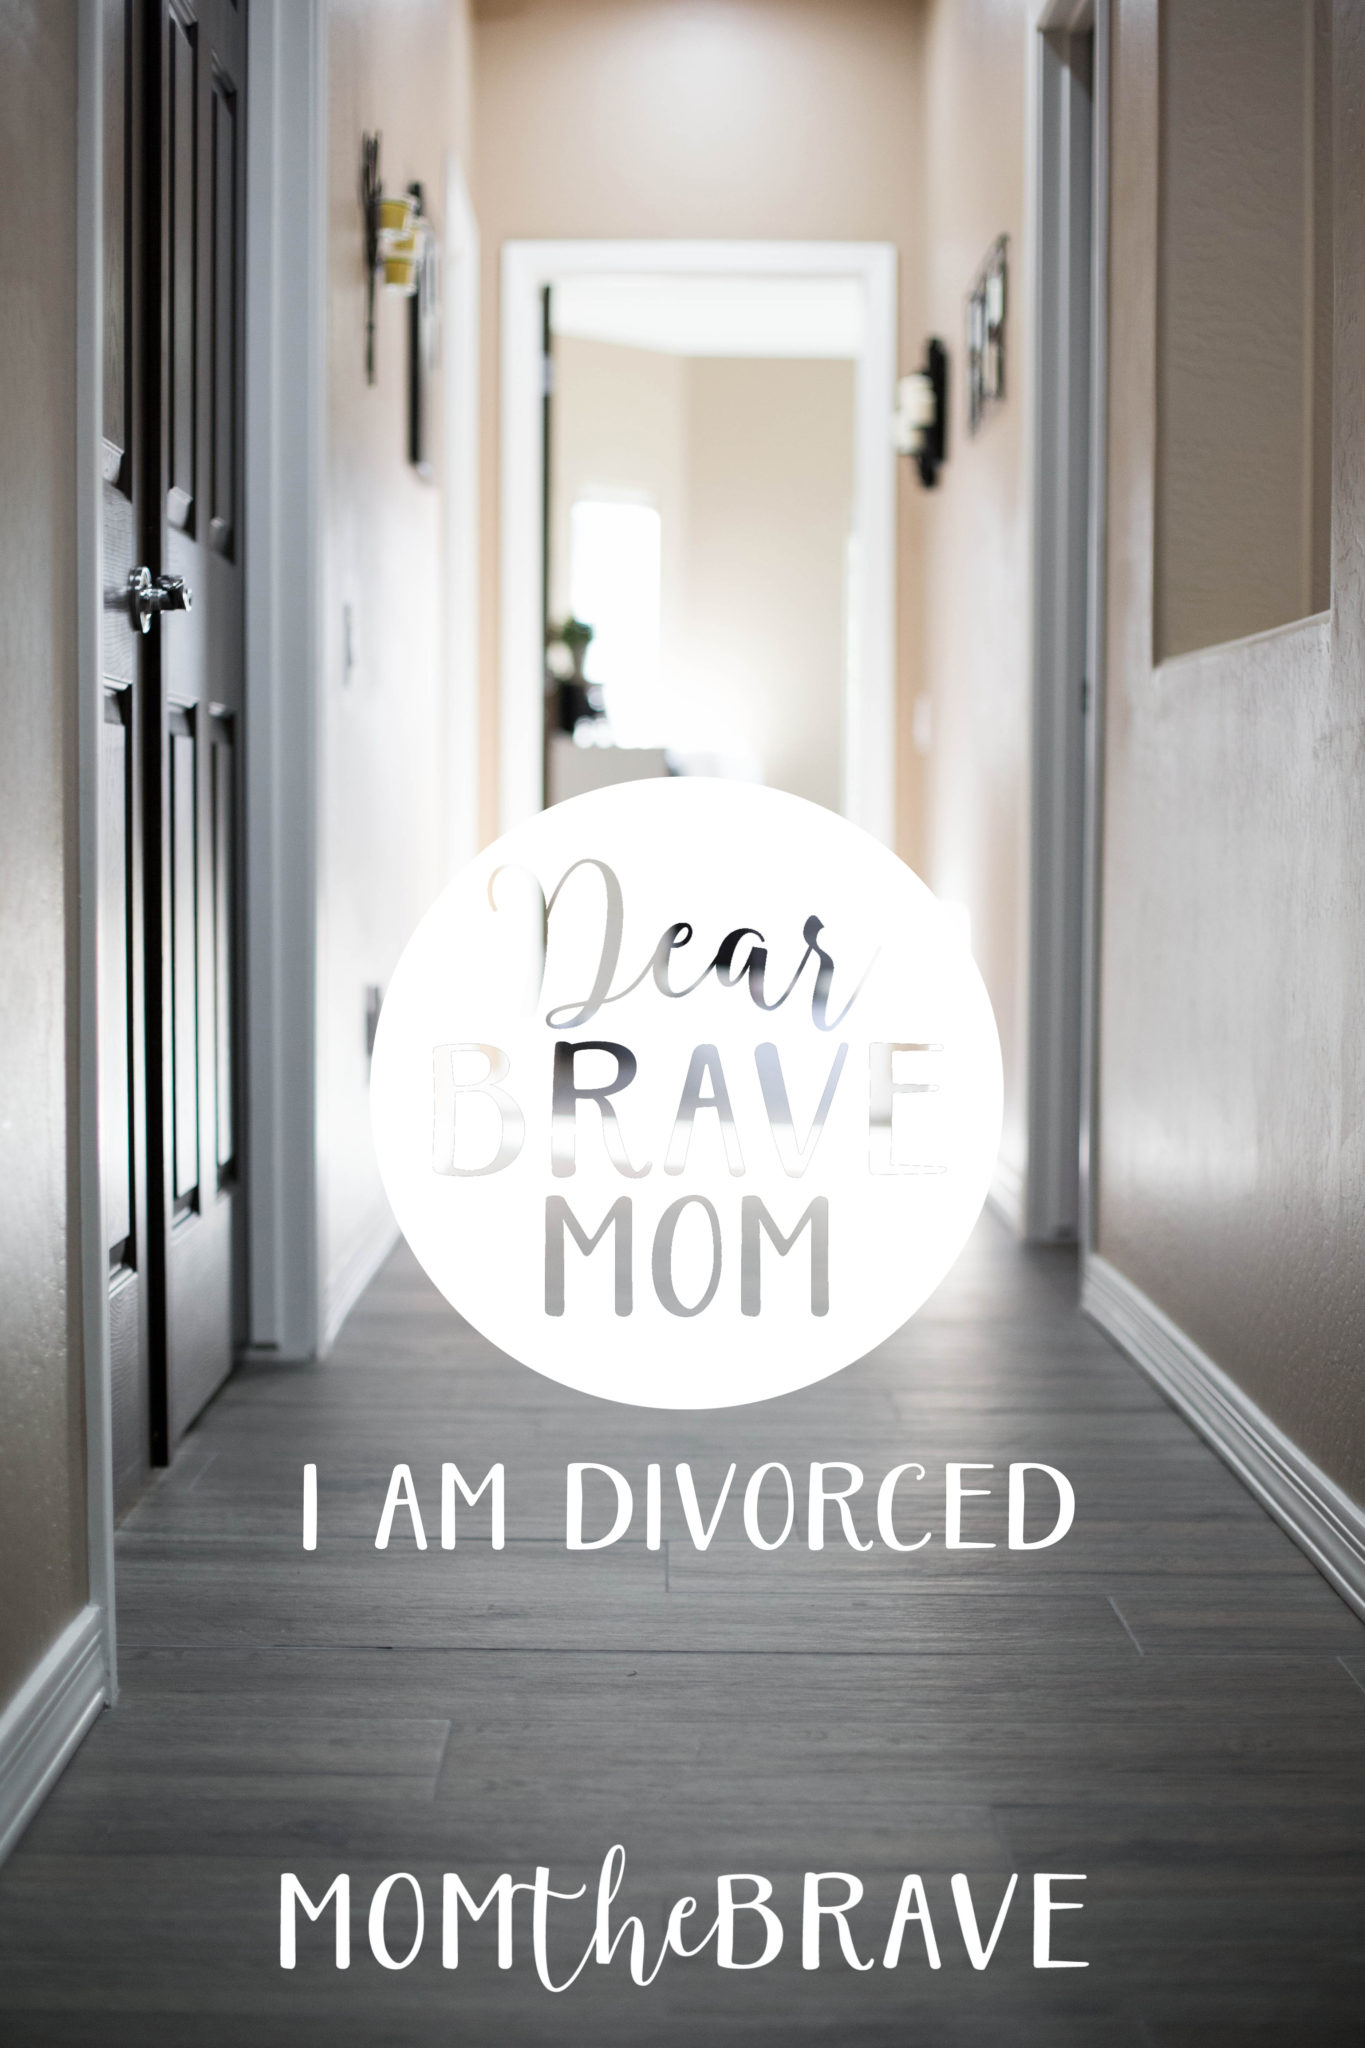 Dear Brave Mom: I am Divorced